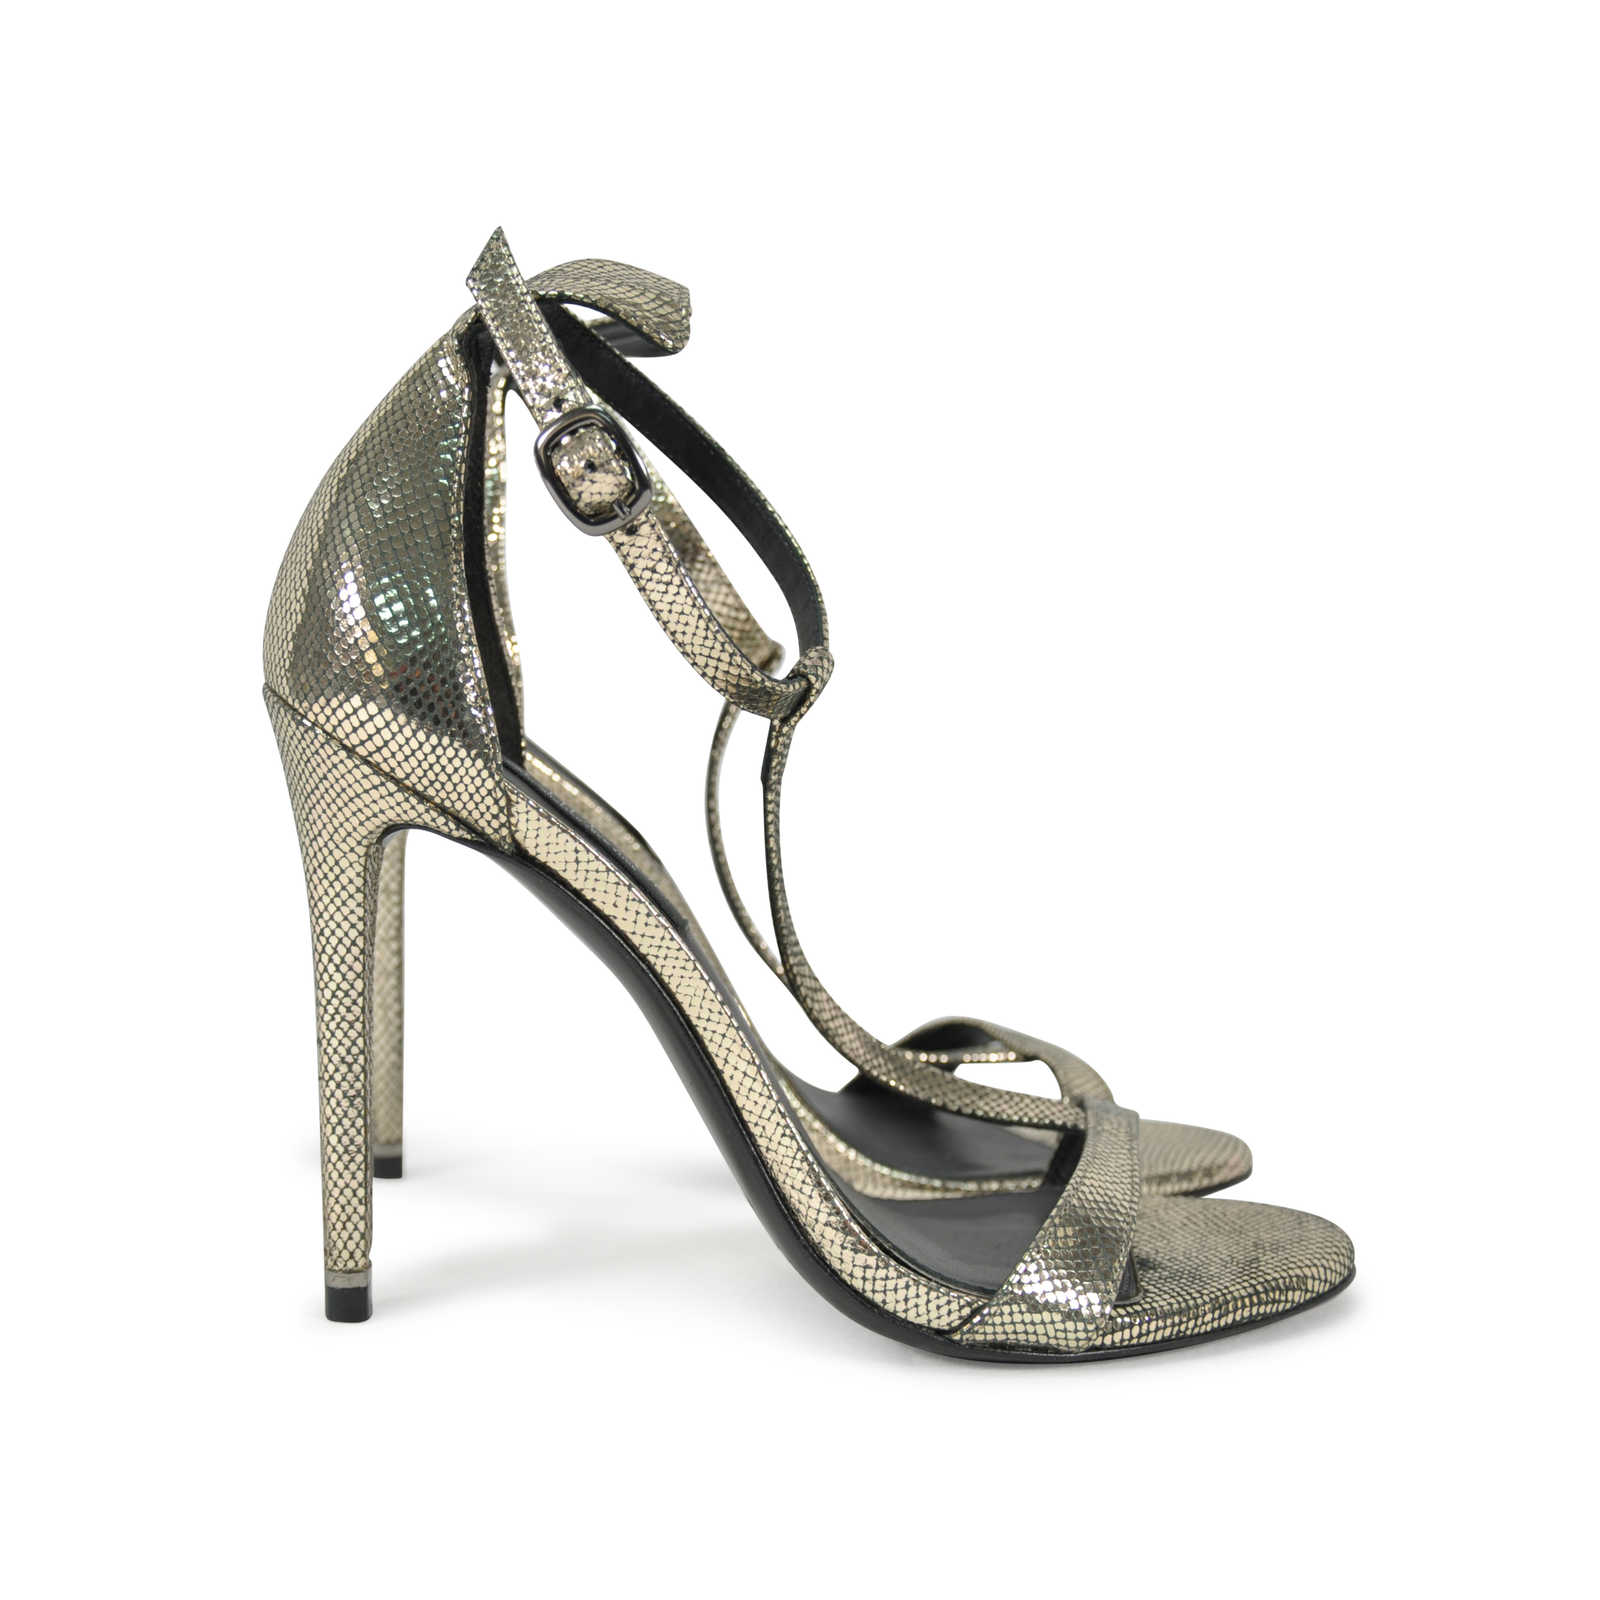 21d970c9d34b ... Authentic Second Hand Rachel Zoe T-Strap Snakeskin Embossed Sandals  (PSS-289- ...